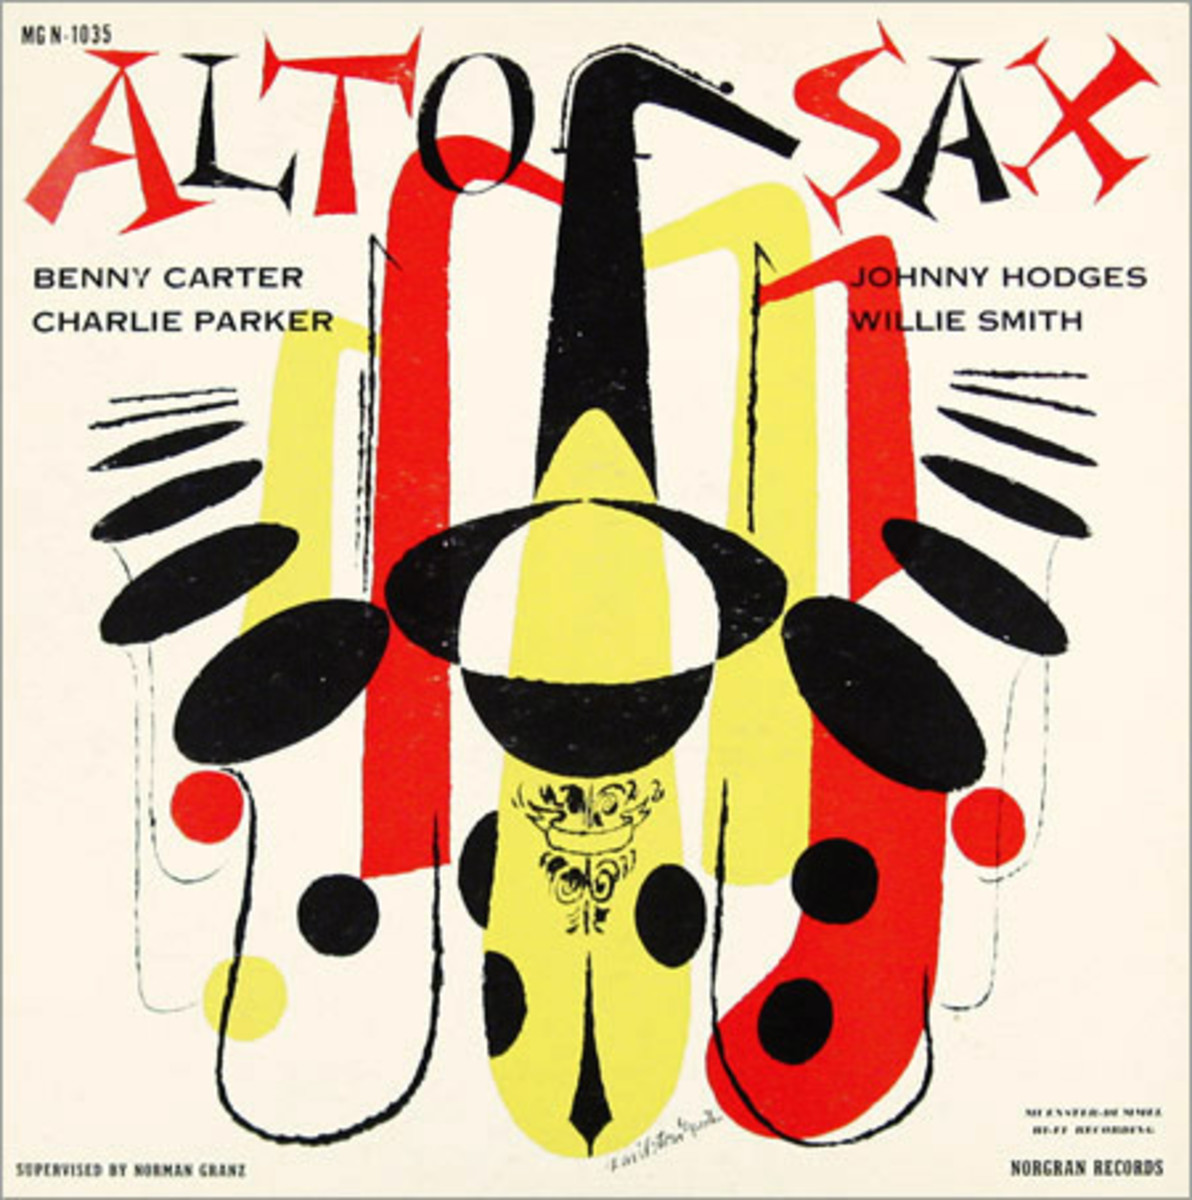 "Various Artist ""Alto Sax"" Norgran 1035 12"" LP Vinyl Record (1957) Album Cover Art by David Stone Martin"